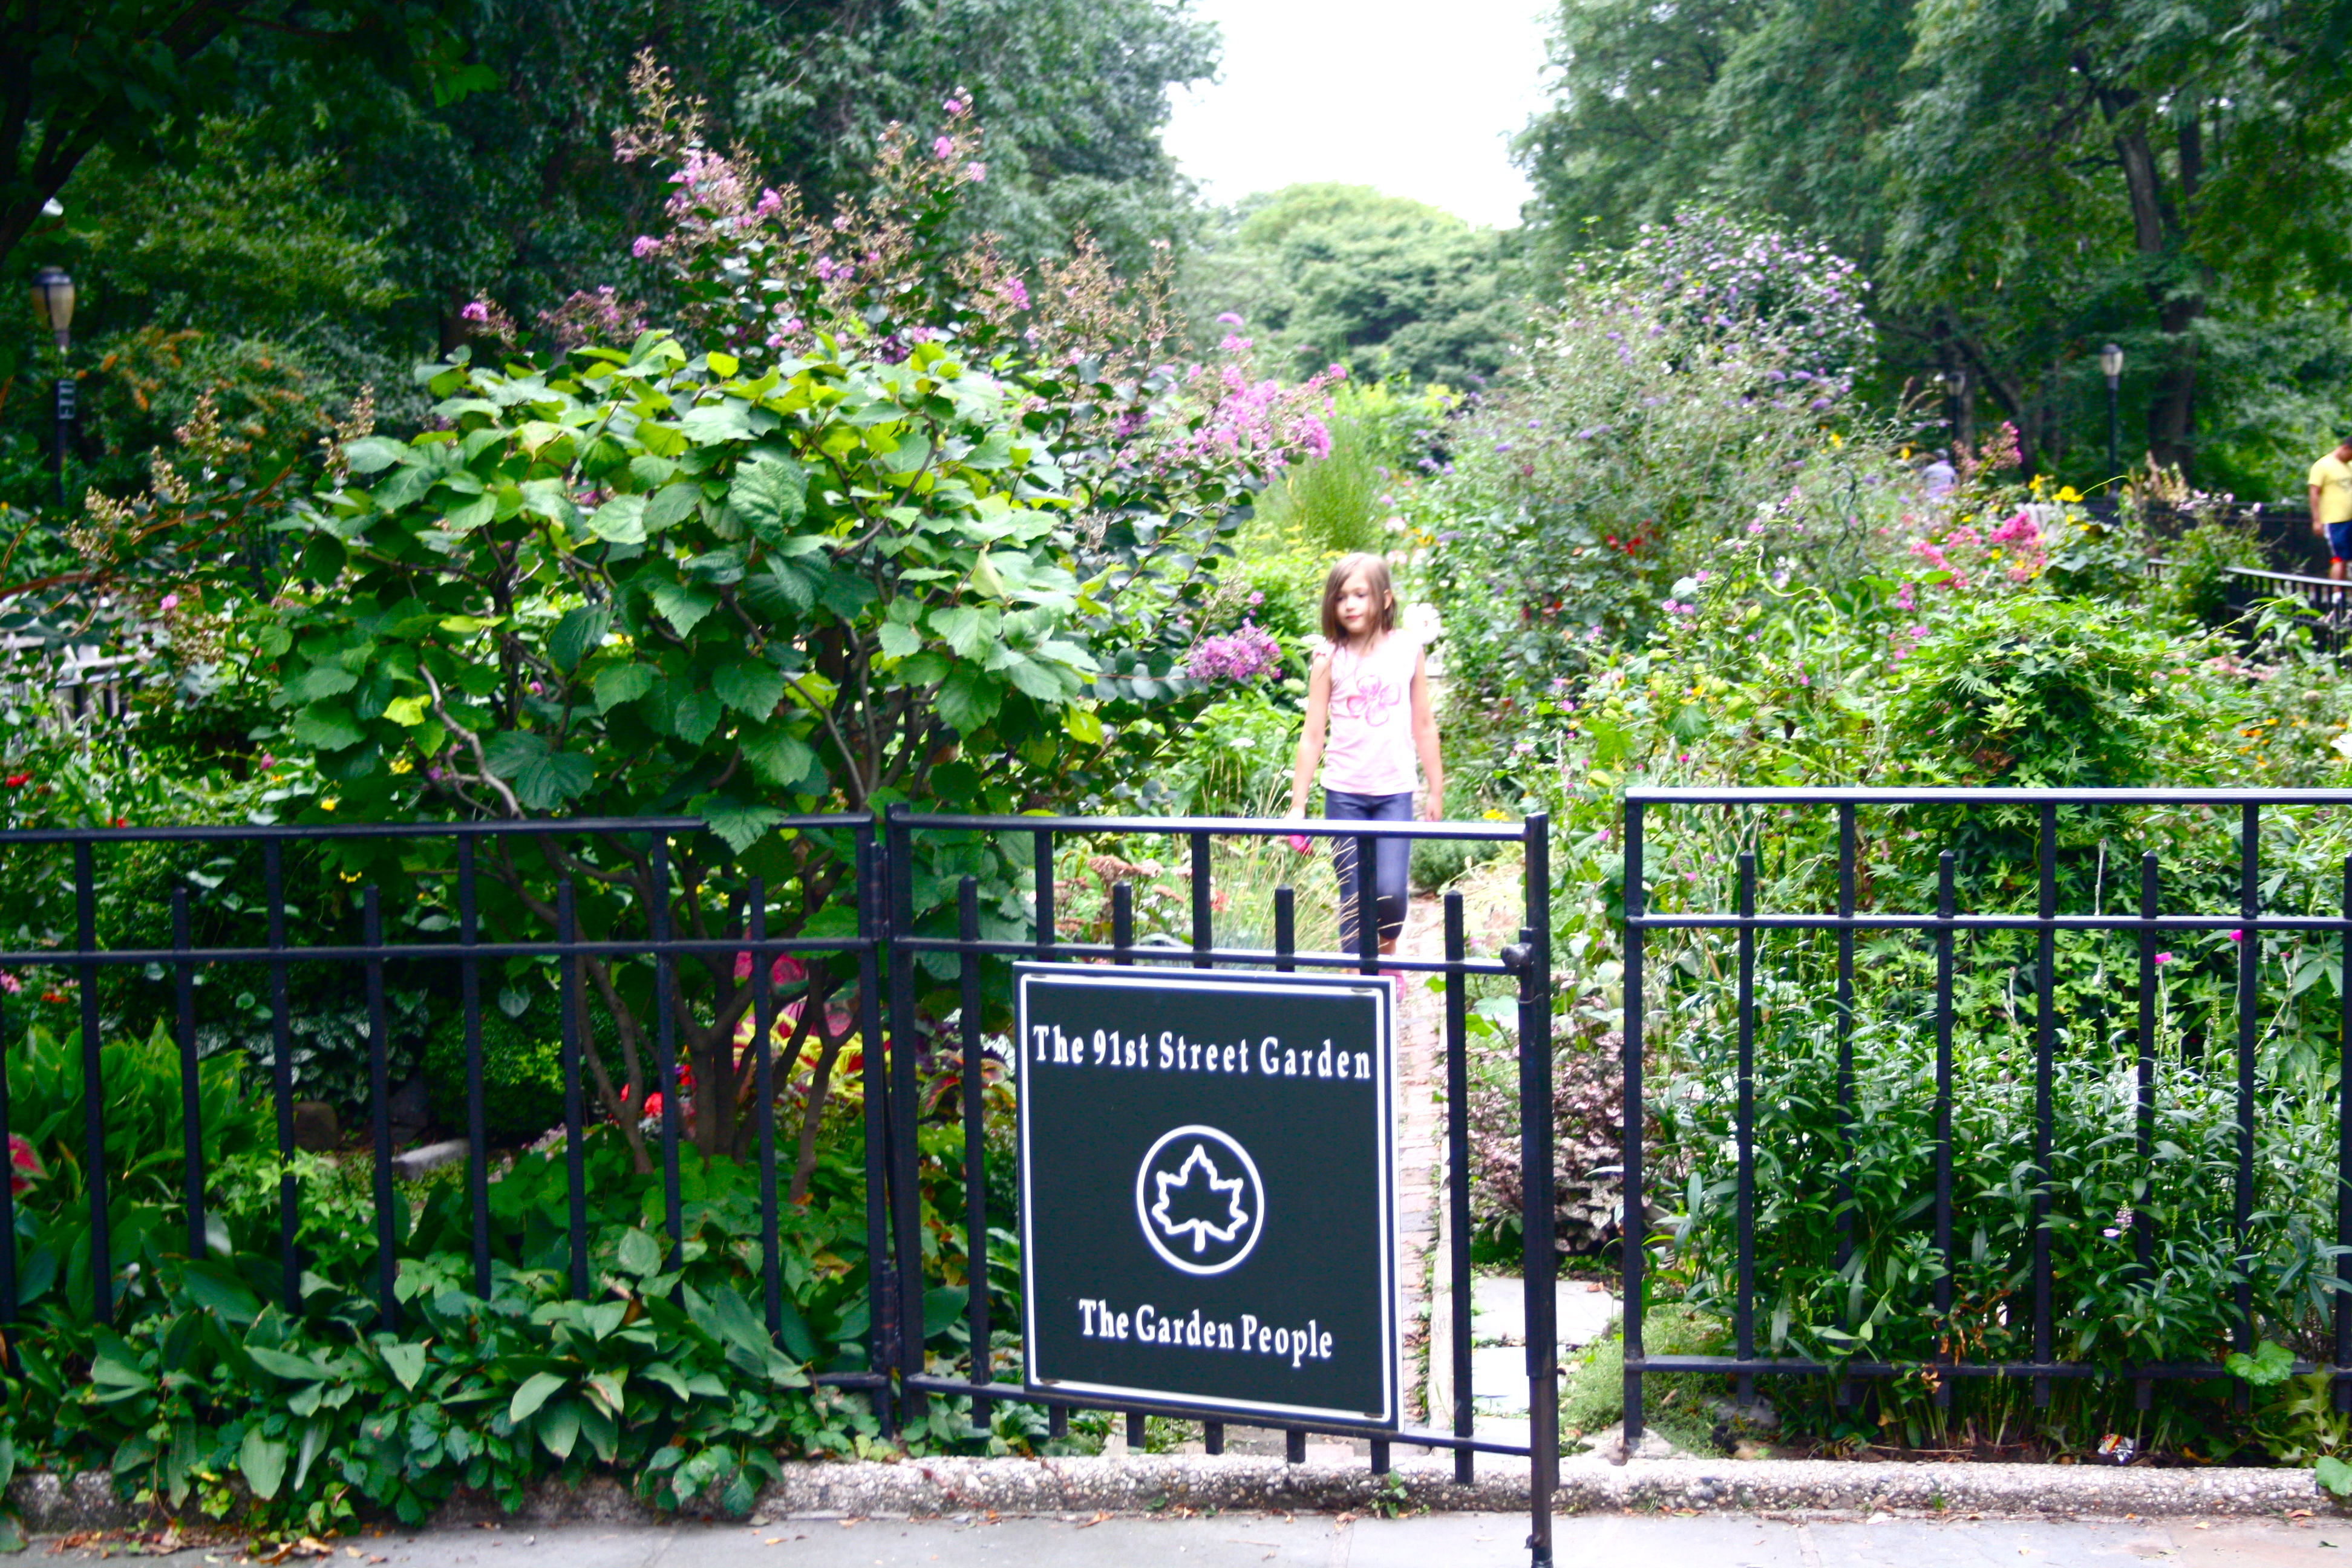 The 91st Street Garden In Riverside Park Which Is So Gorgeous And The  Perfect Place To End A Movie. Definitely Hit Some Of These Places If You  Are Fan Of ...